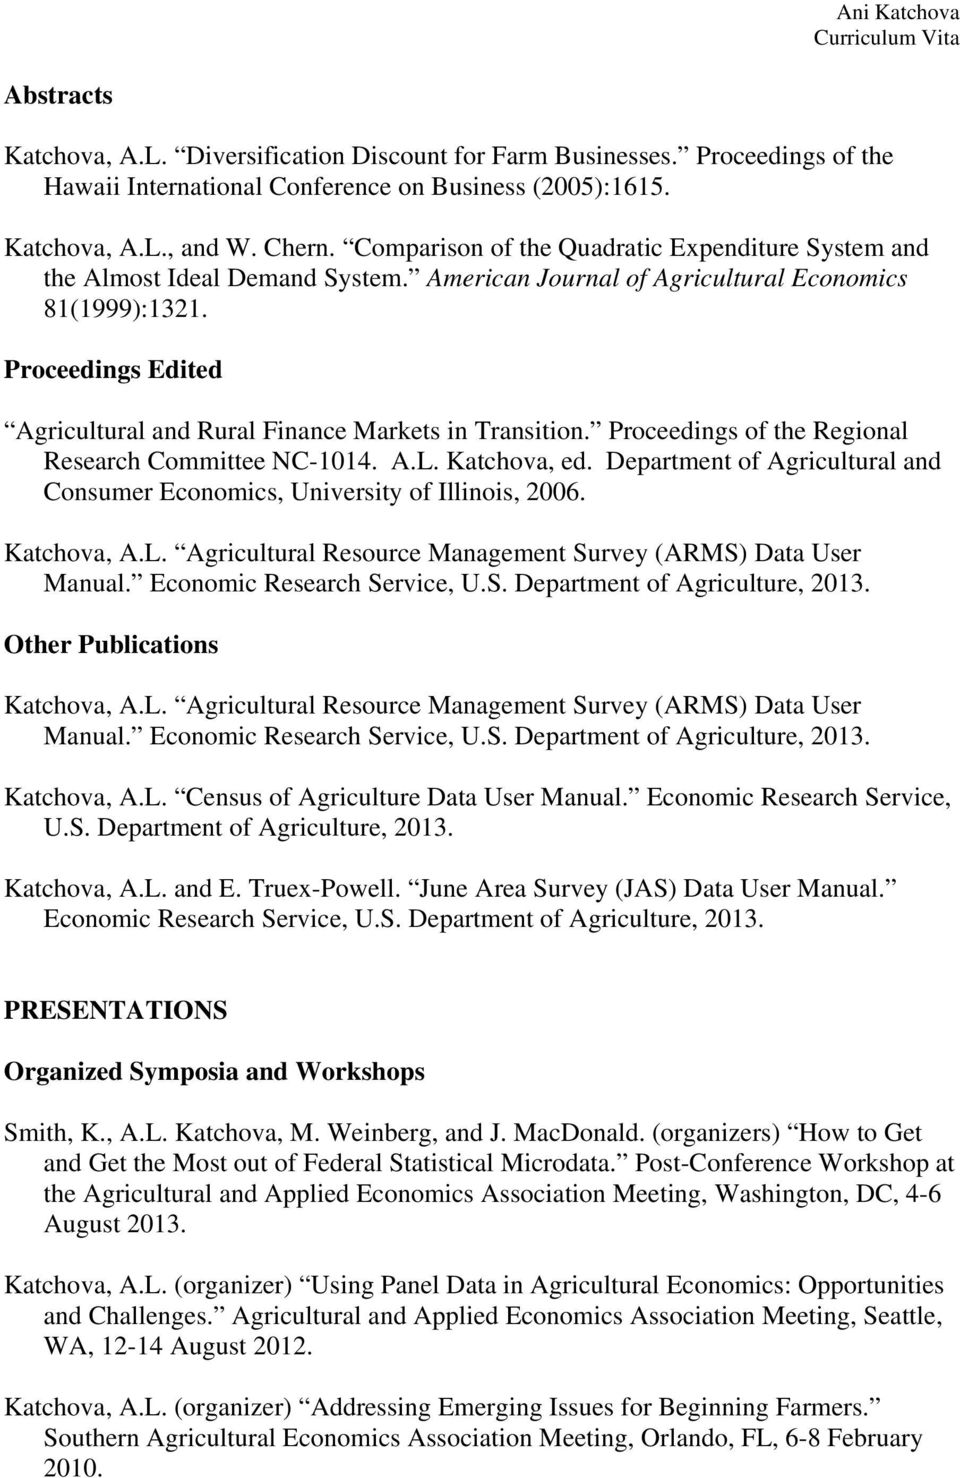 Proceedings Edited Agricultural and Rural Finance Markets in Transition. Proceedings of the Regional Research Committee NC-1014. A.L. Katchova, ed.